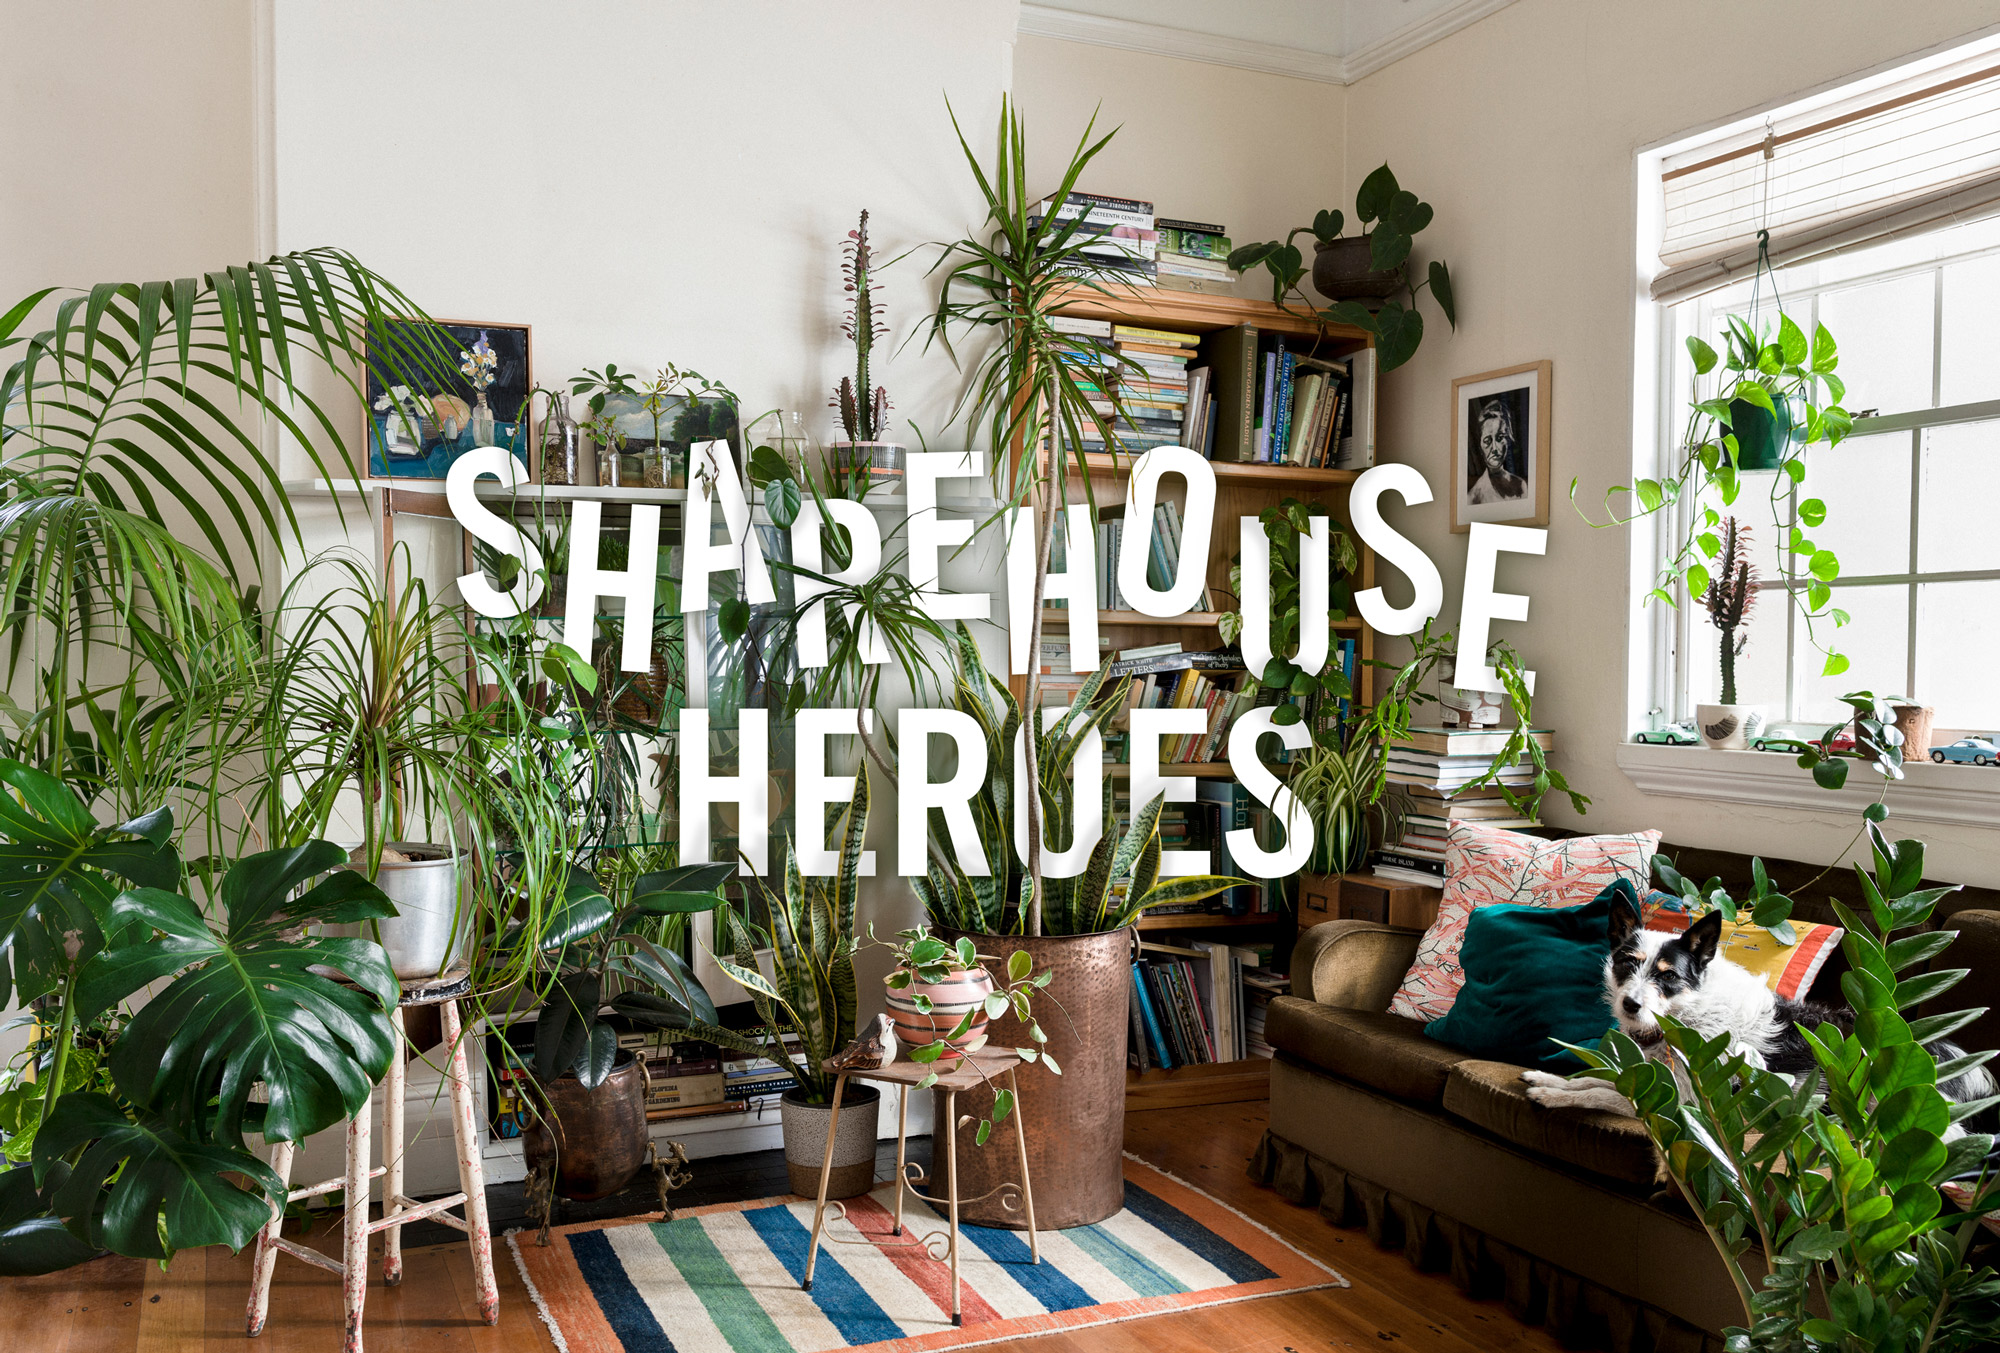 Sharehouse-Heroes----Photo-by-Daniel-Shipp